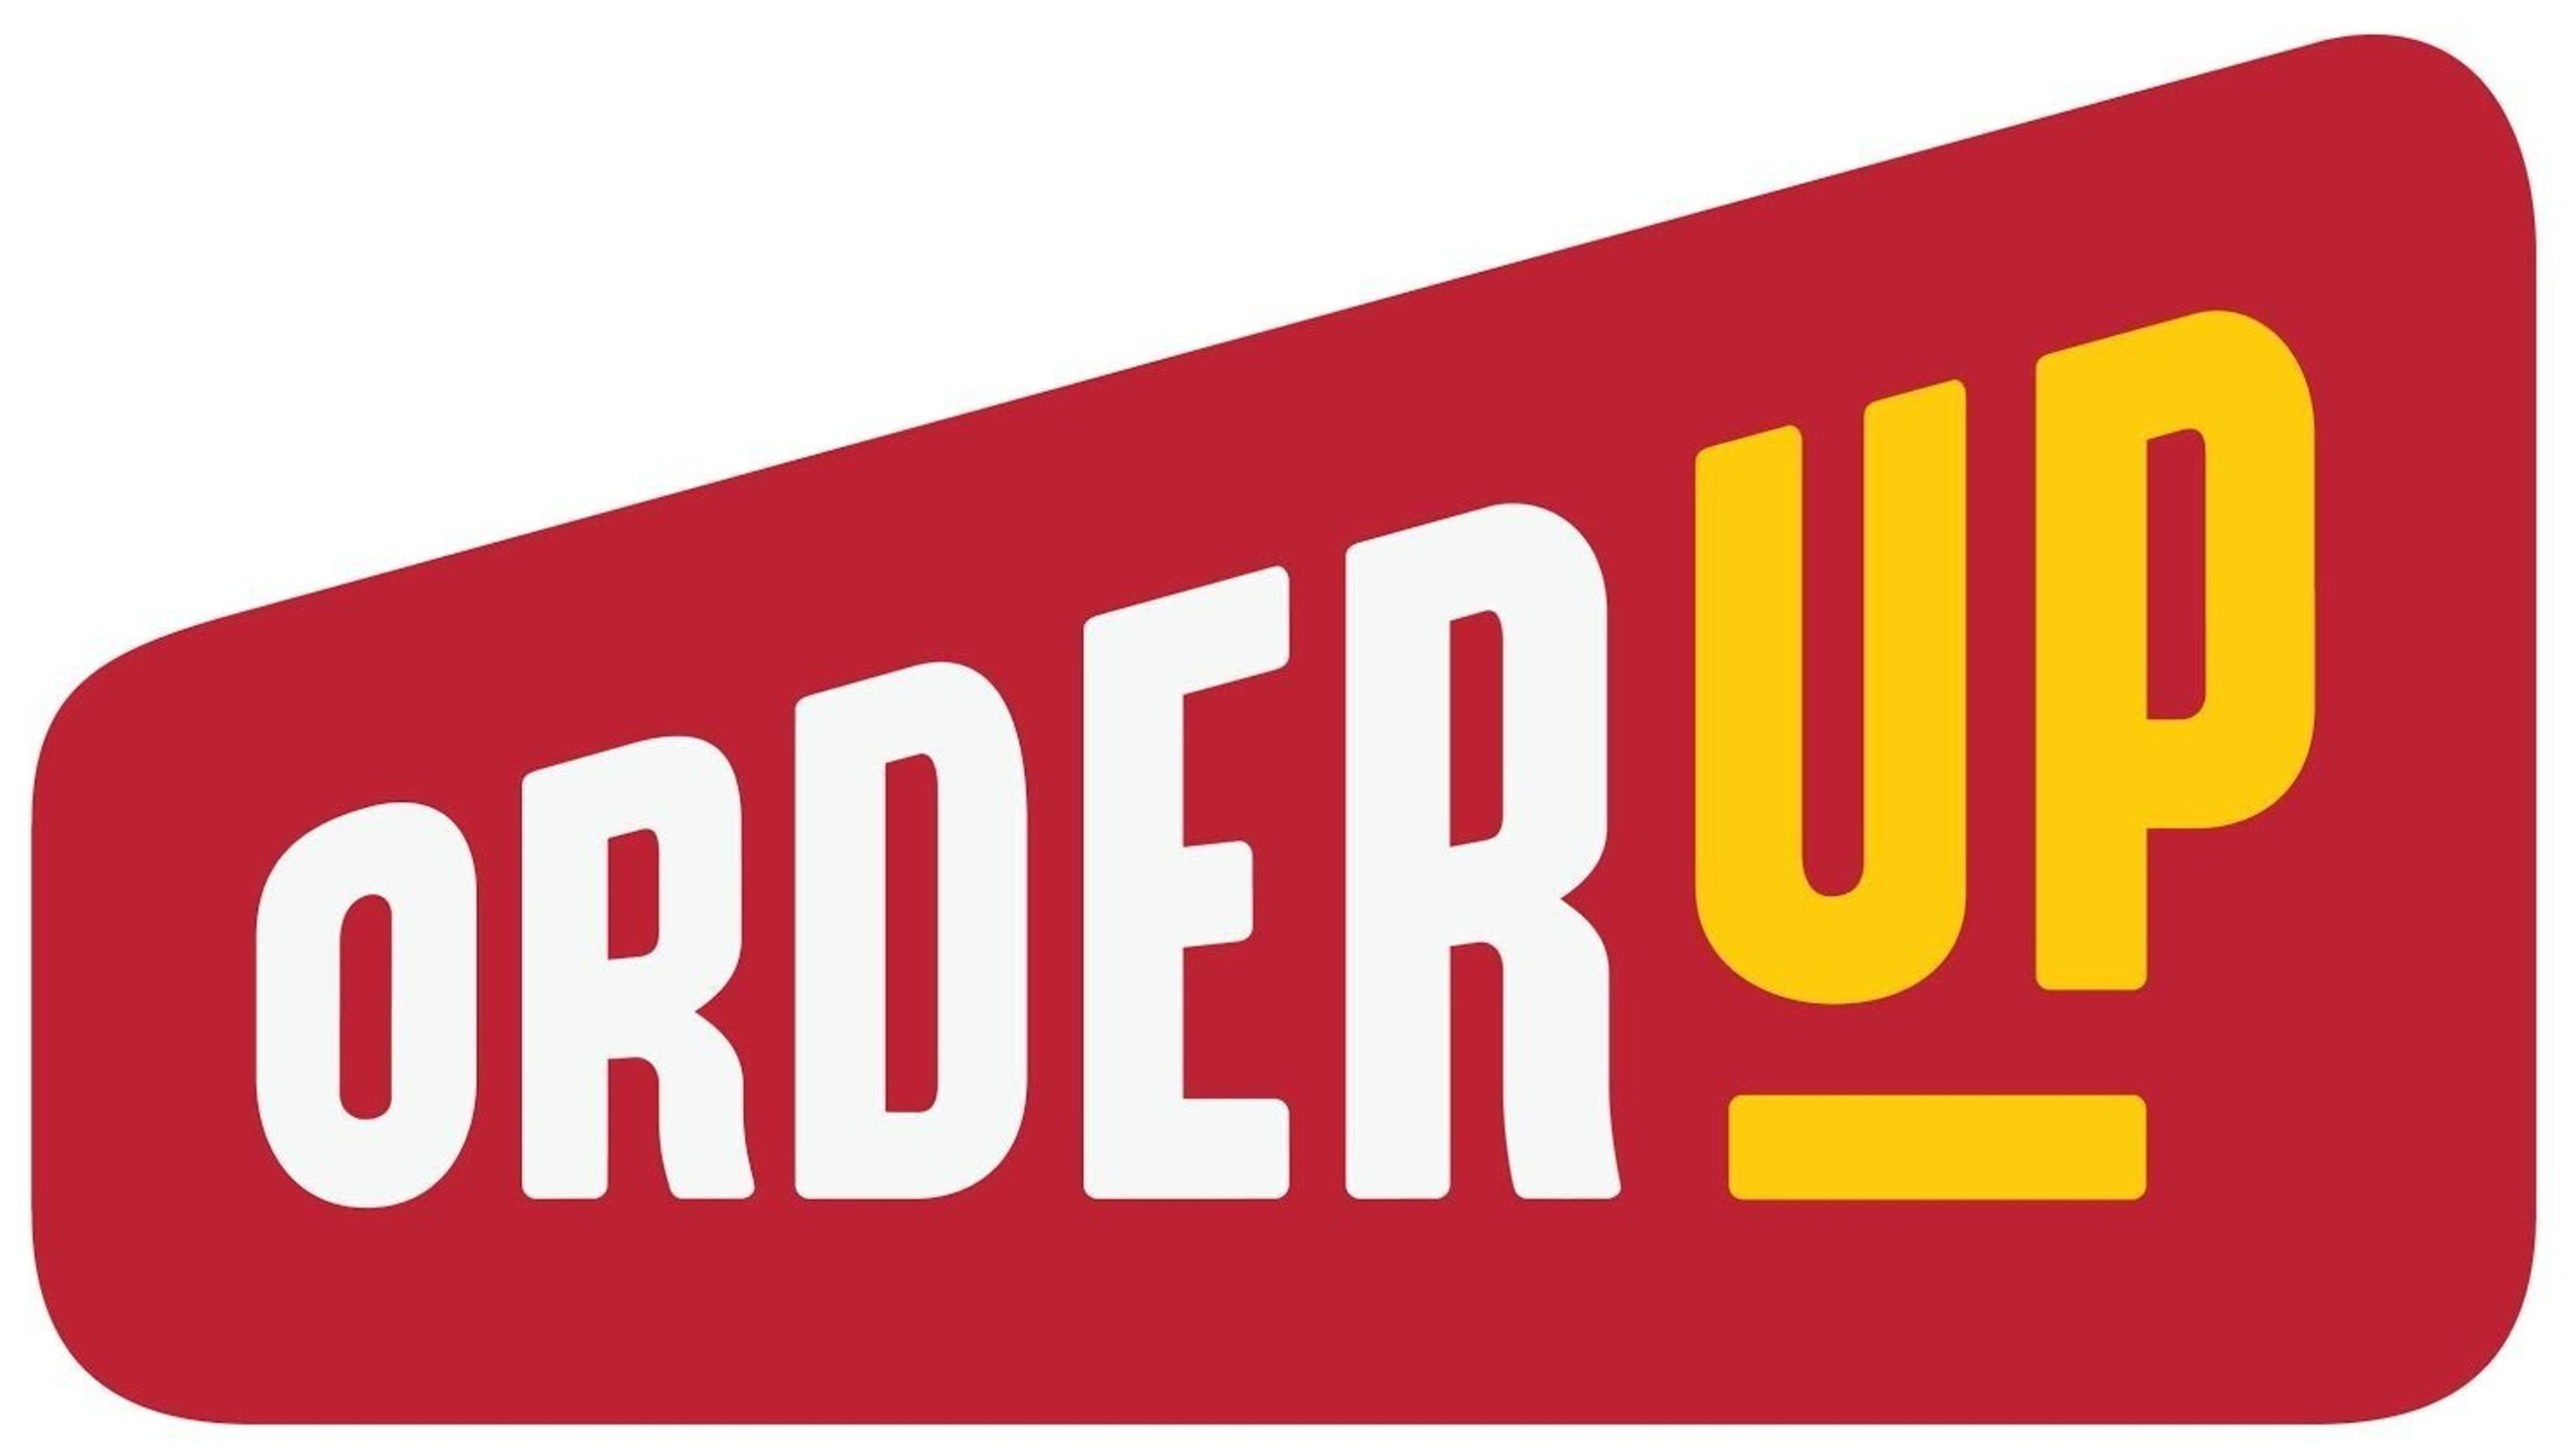 OrderUp is the most complete food delivery marketplace focused on delivering from the restaurants outside of ...